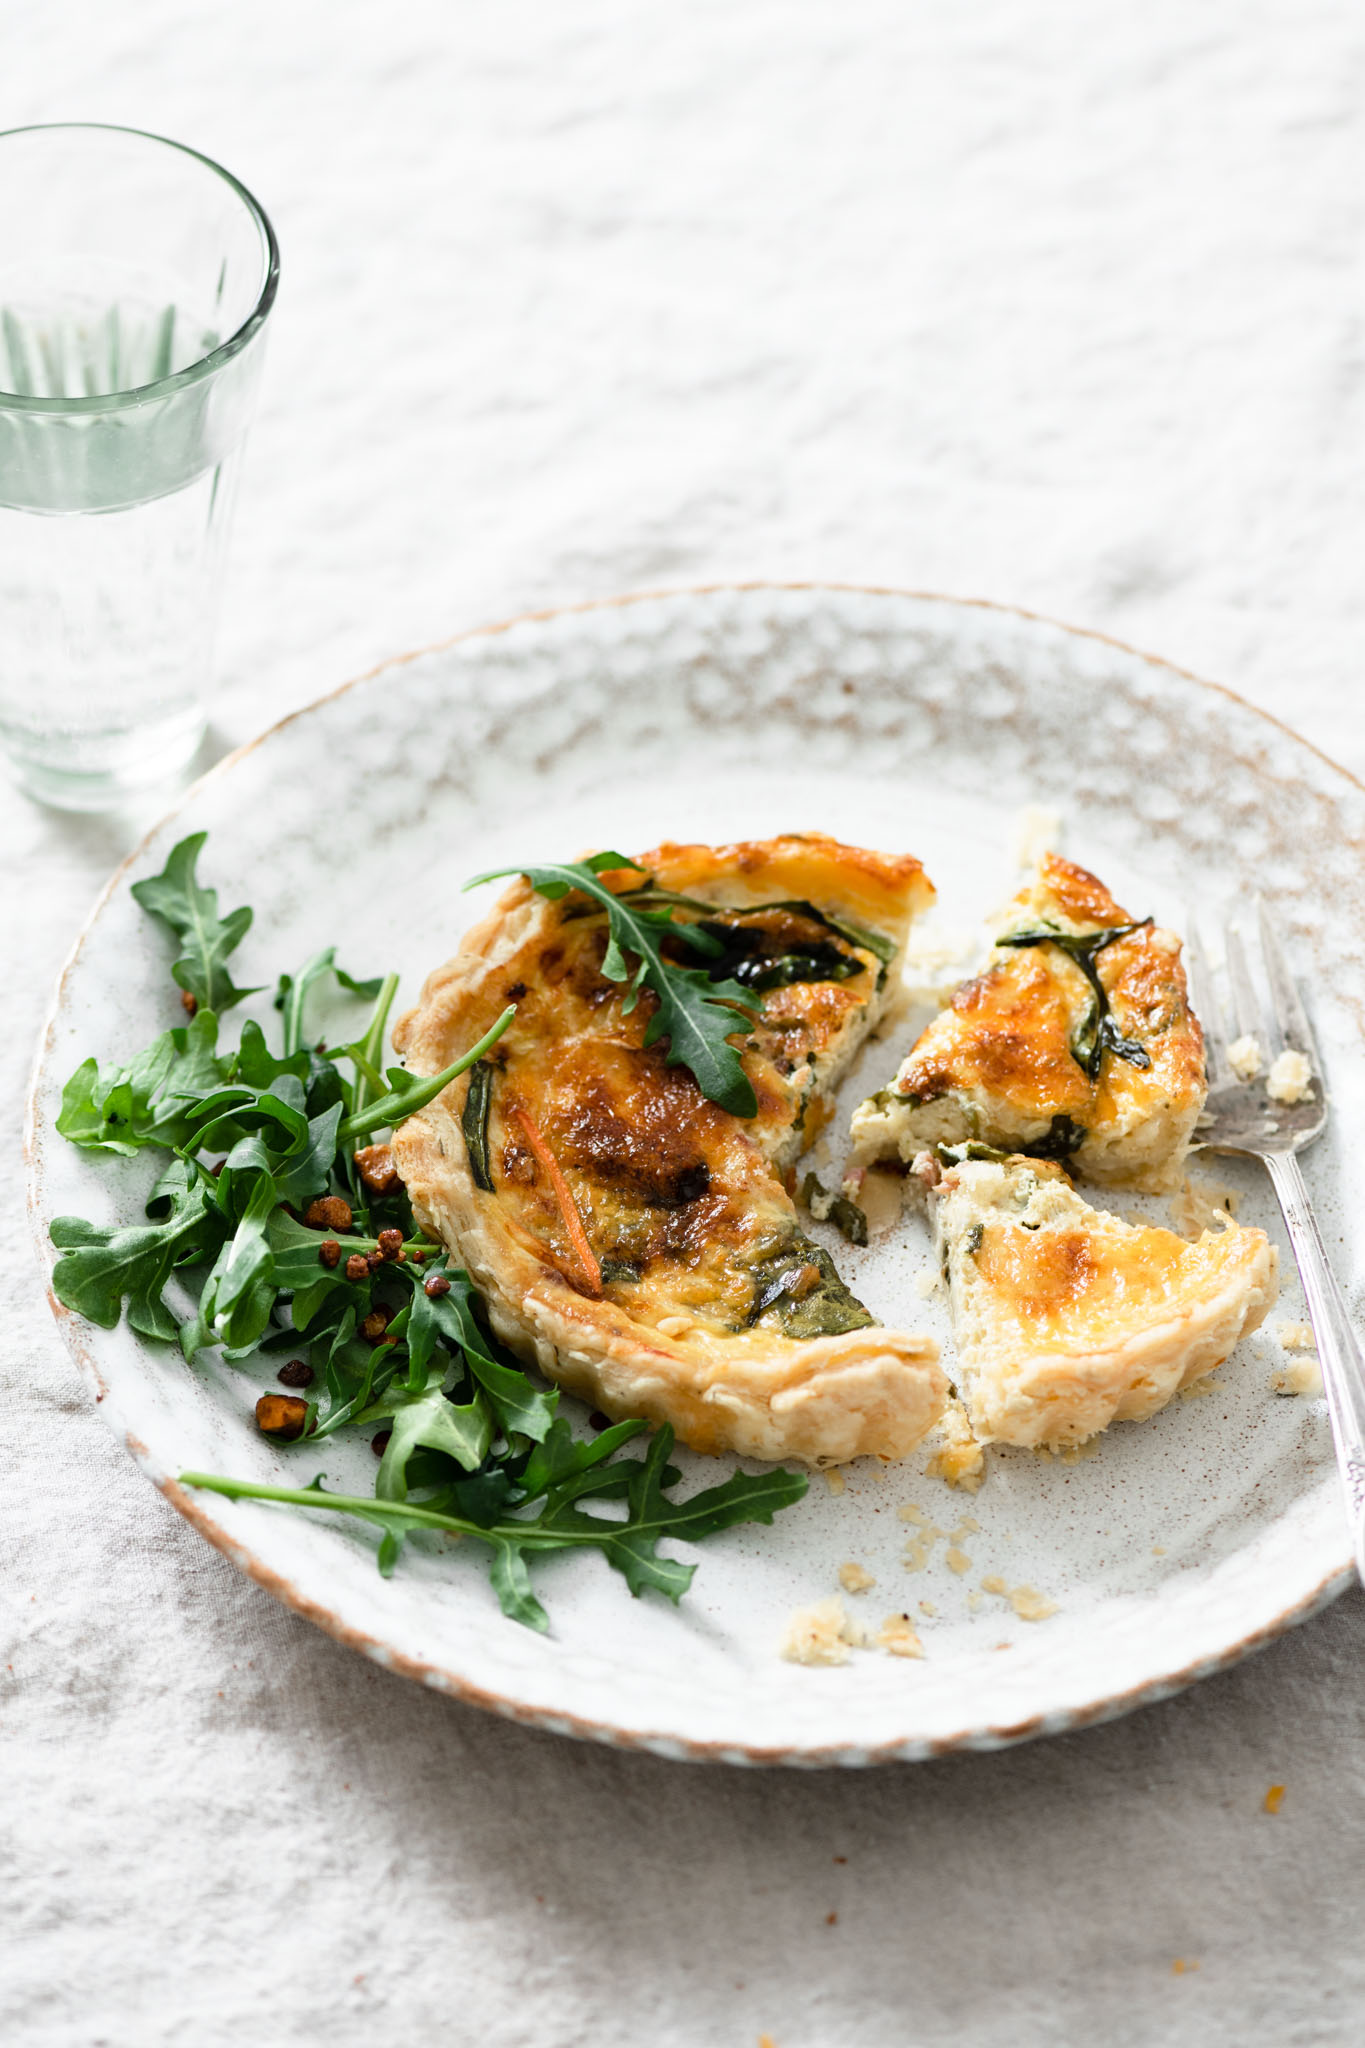 Breakfast quiche with an arugula salad.